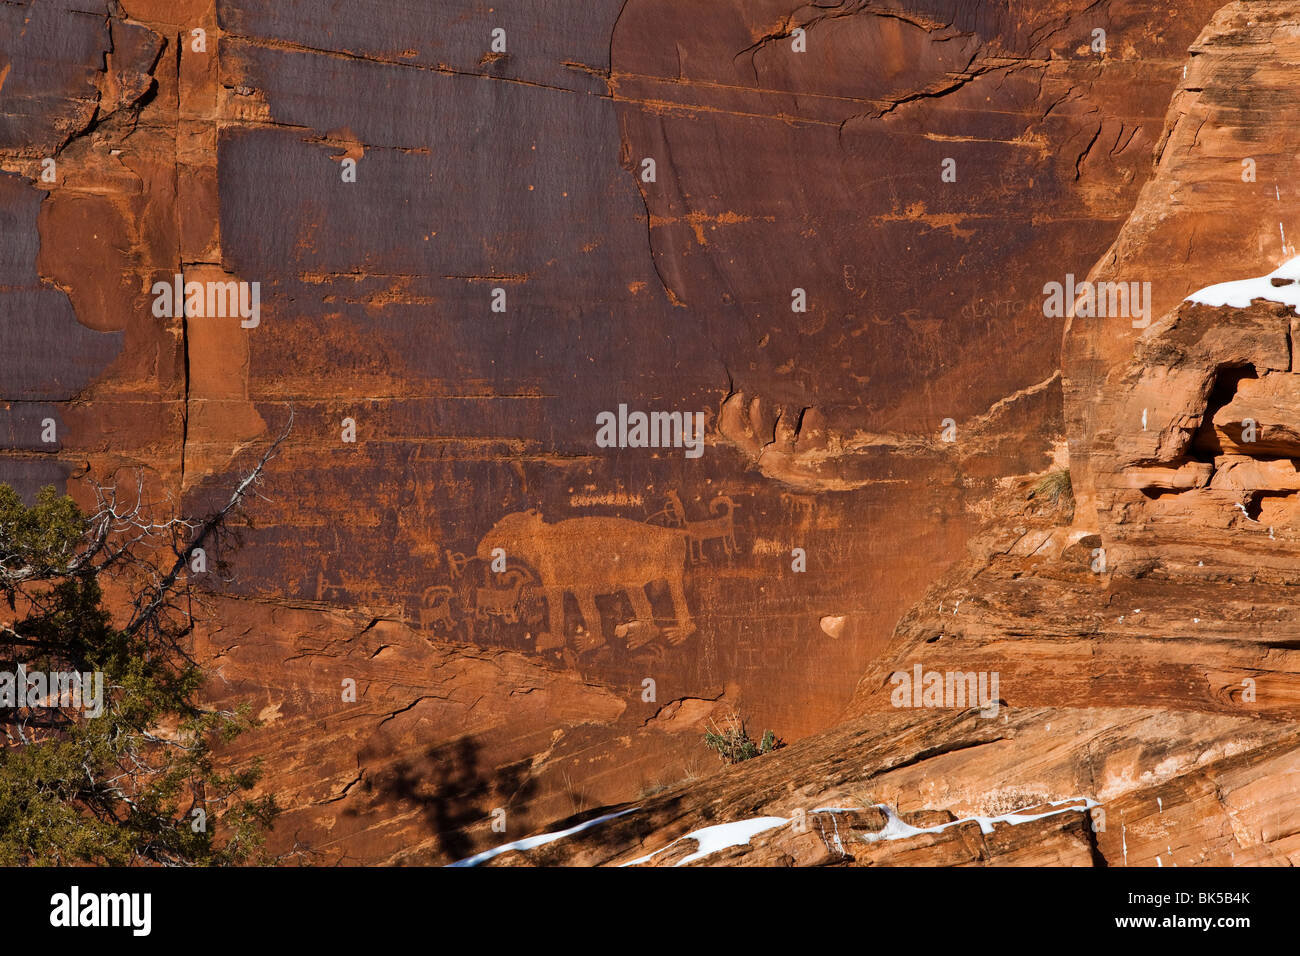 Anasazi Petroglyphs, Canyonlands National Park, Utah, USA - Stock Image